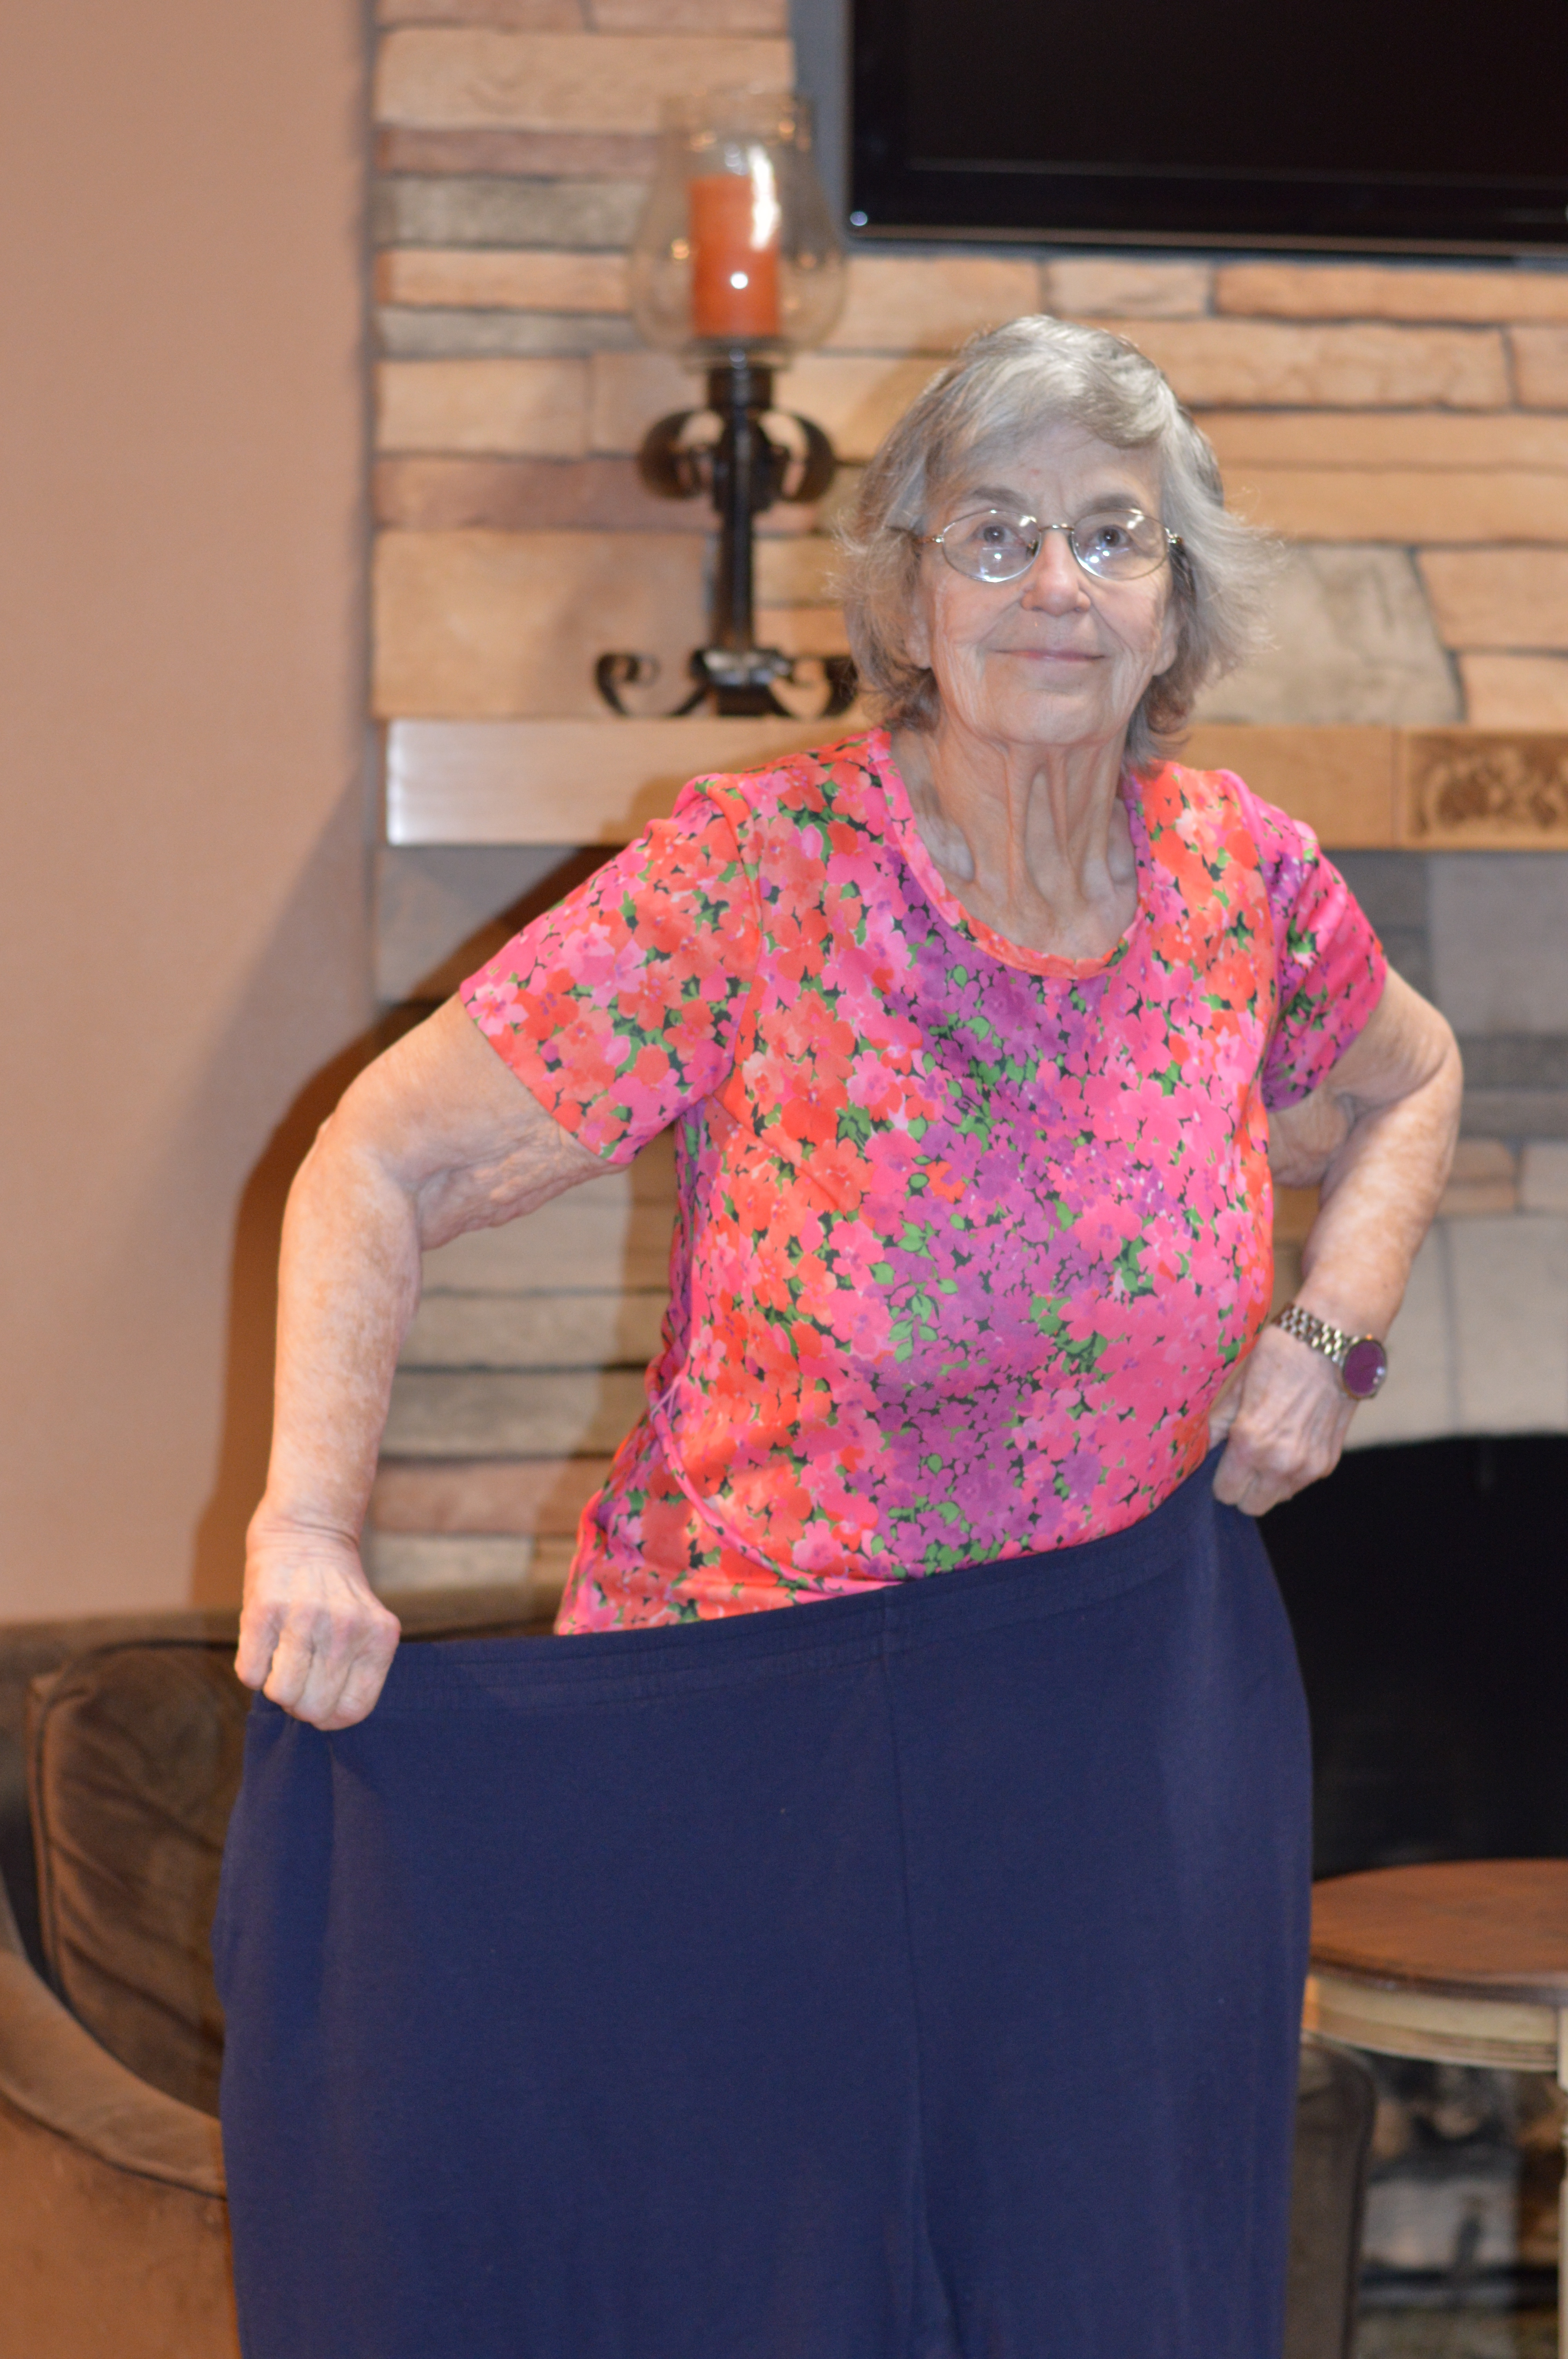 Mary Phillips, who was honored by Take Off Pounds Sensibly (TOPS) for reaching her goal weight loss of 164 pounds, holds up pants showing her at her largest. Photo by Vanessa Salvia.